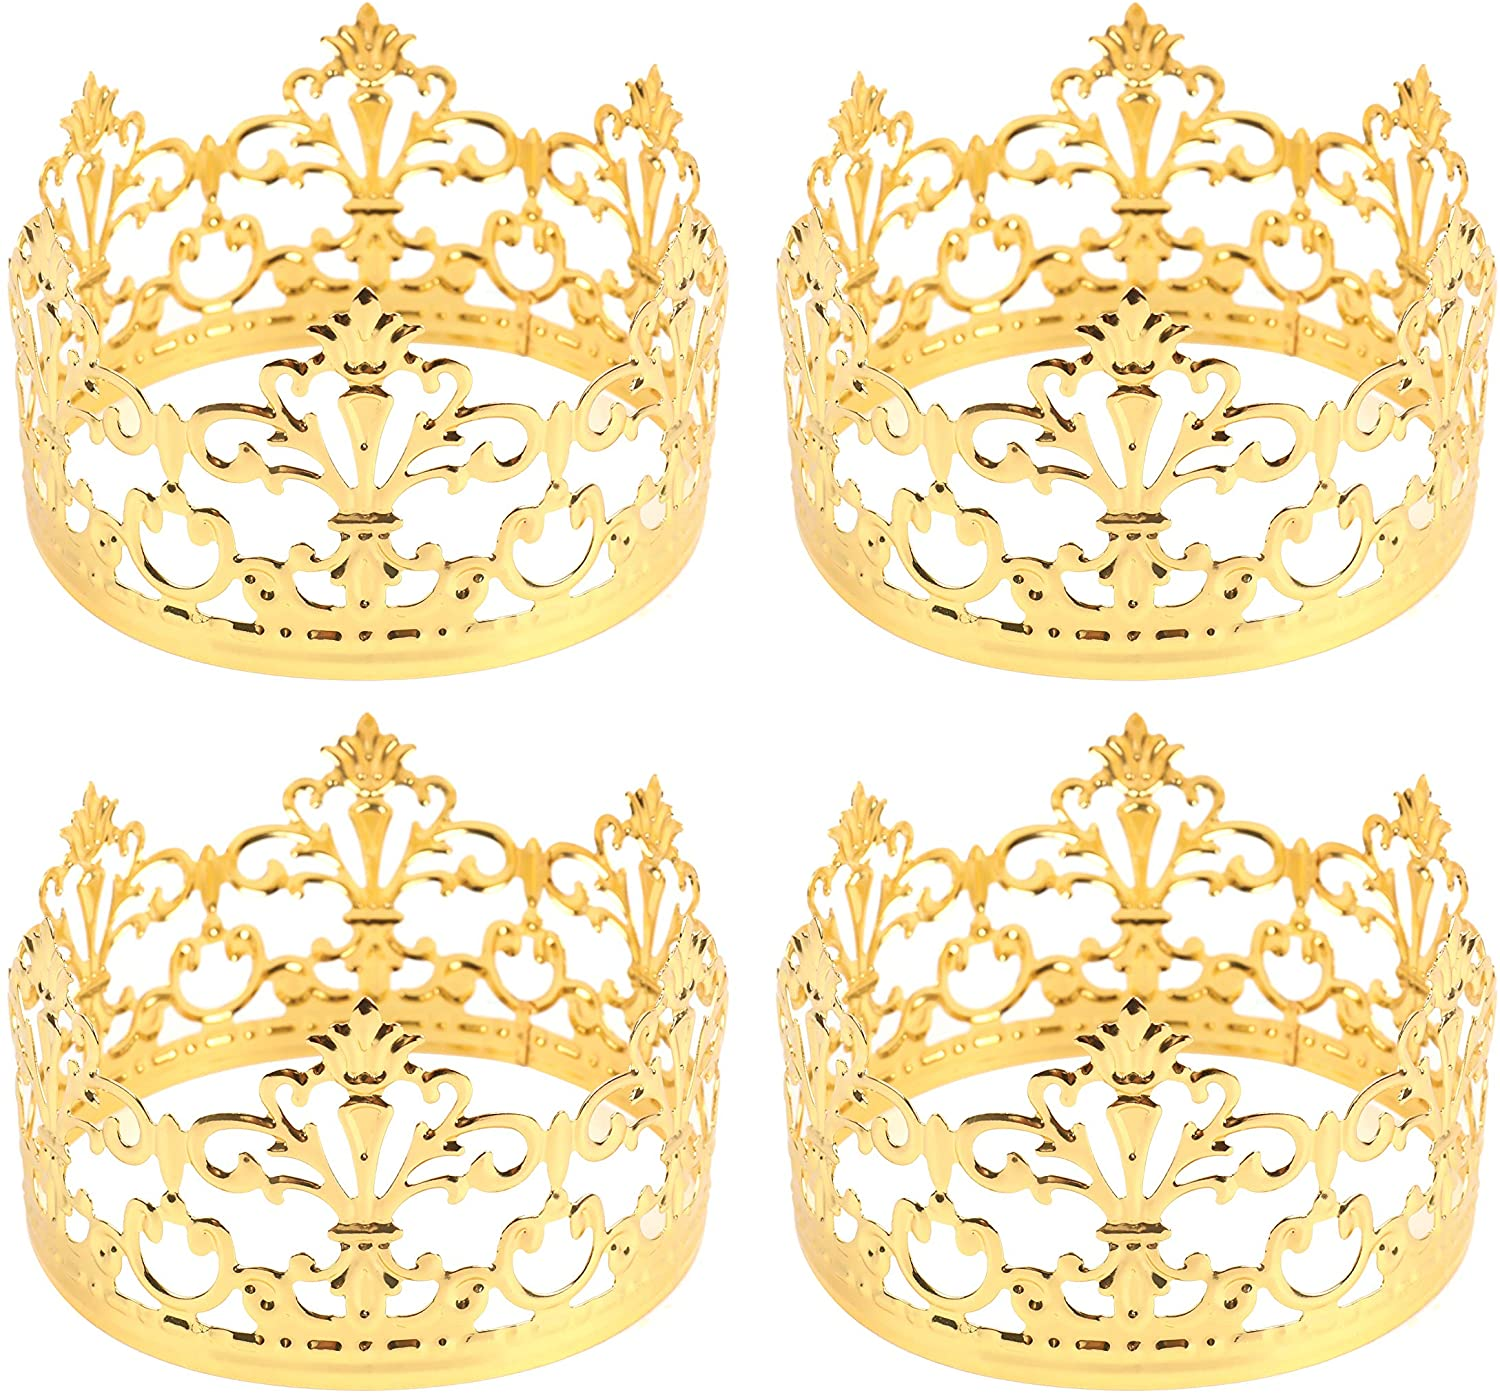 Fasmov 4 Pack Mini Prinrcess Gold Crown Cake Topper for Wedding Birthday Party Cake Decoration (Gold)